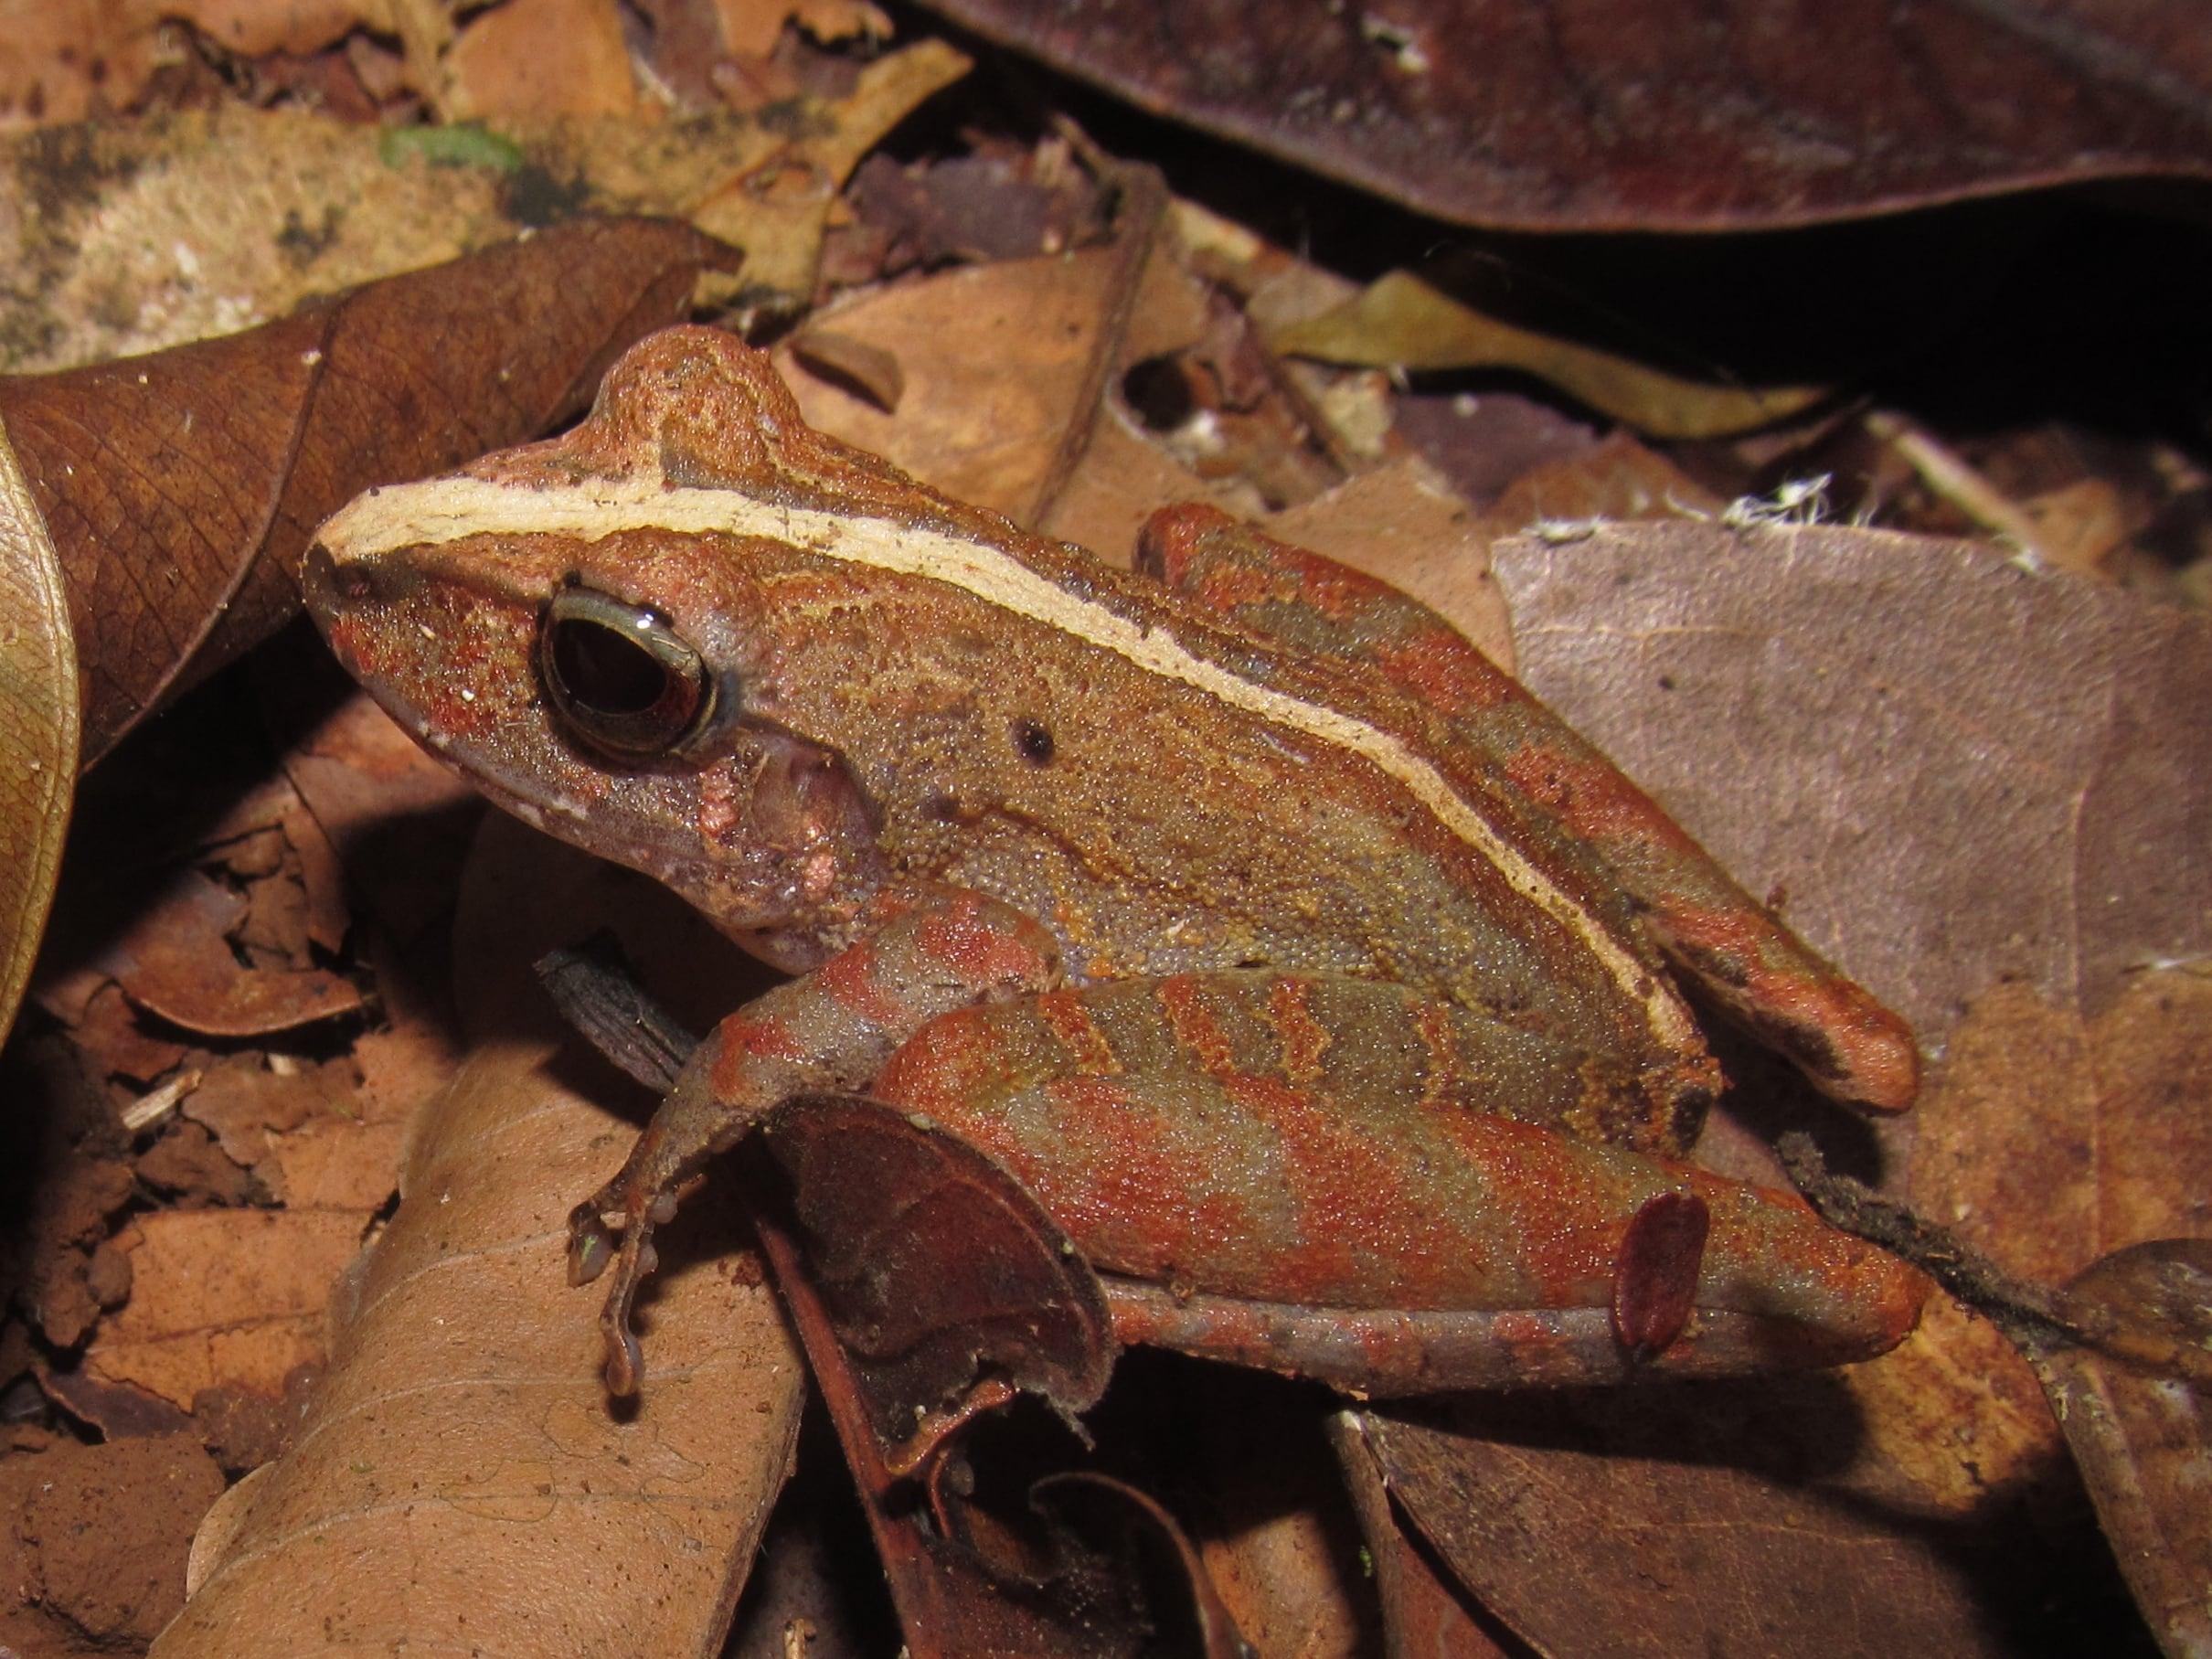 One of many amazing frogs we saw during a day hike in the Corcovado National Park.